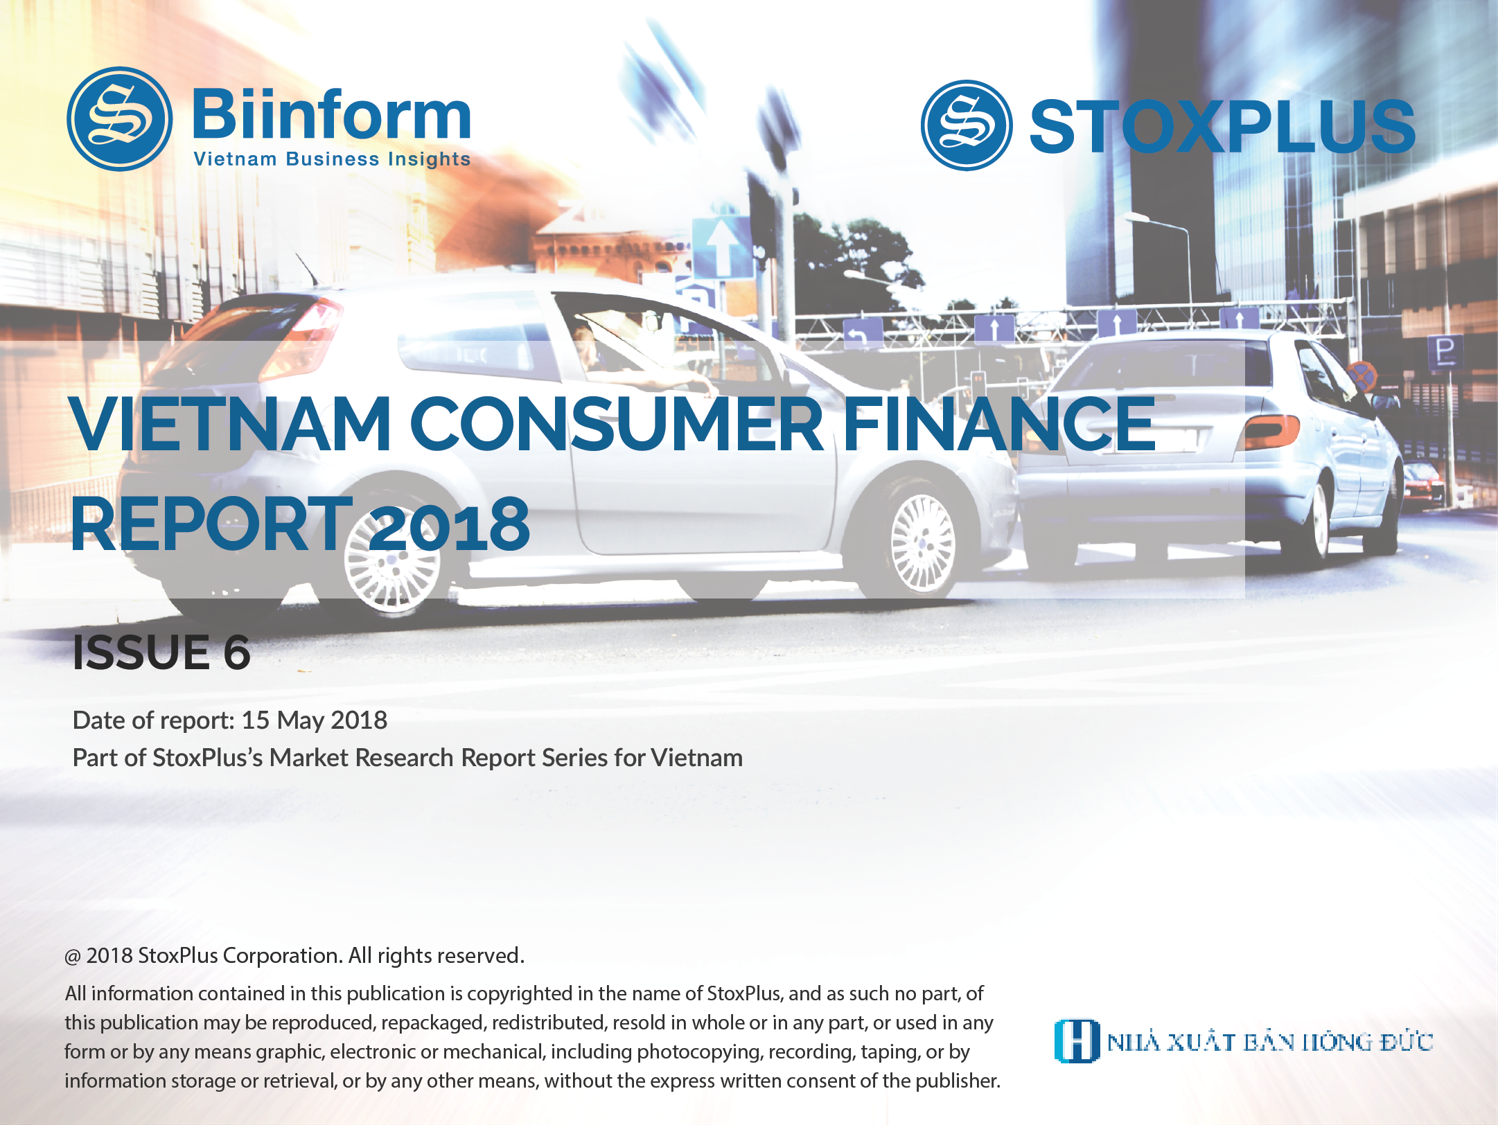 Vietnam Consumer Finance Market 2018 Report